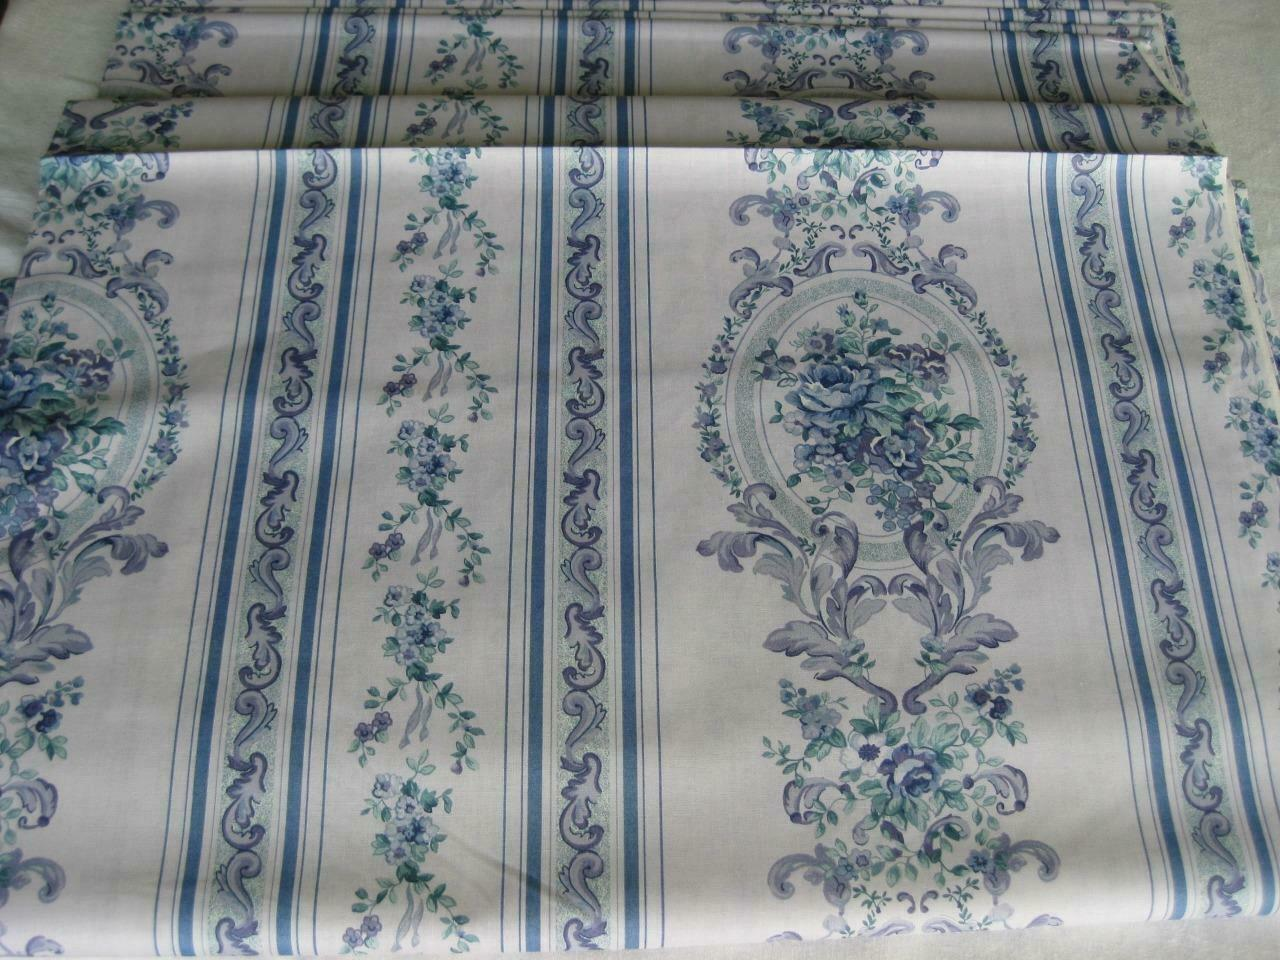 Image 01 - Springs French Country Cotton Fabric Periwinkle Blue Teal Floral Trellis Vine 3Y